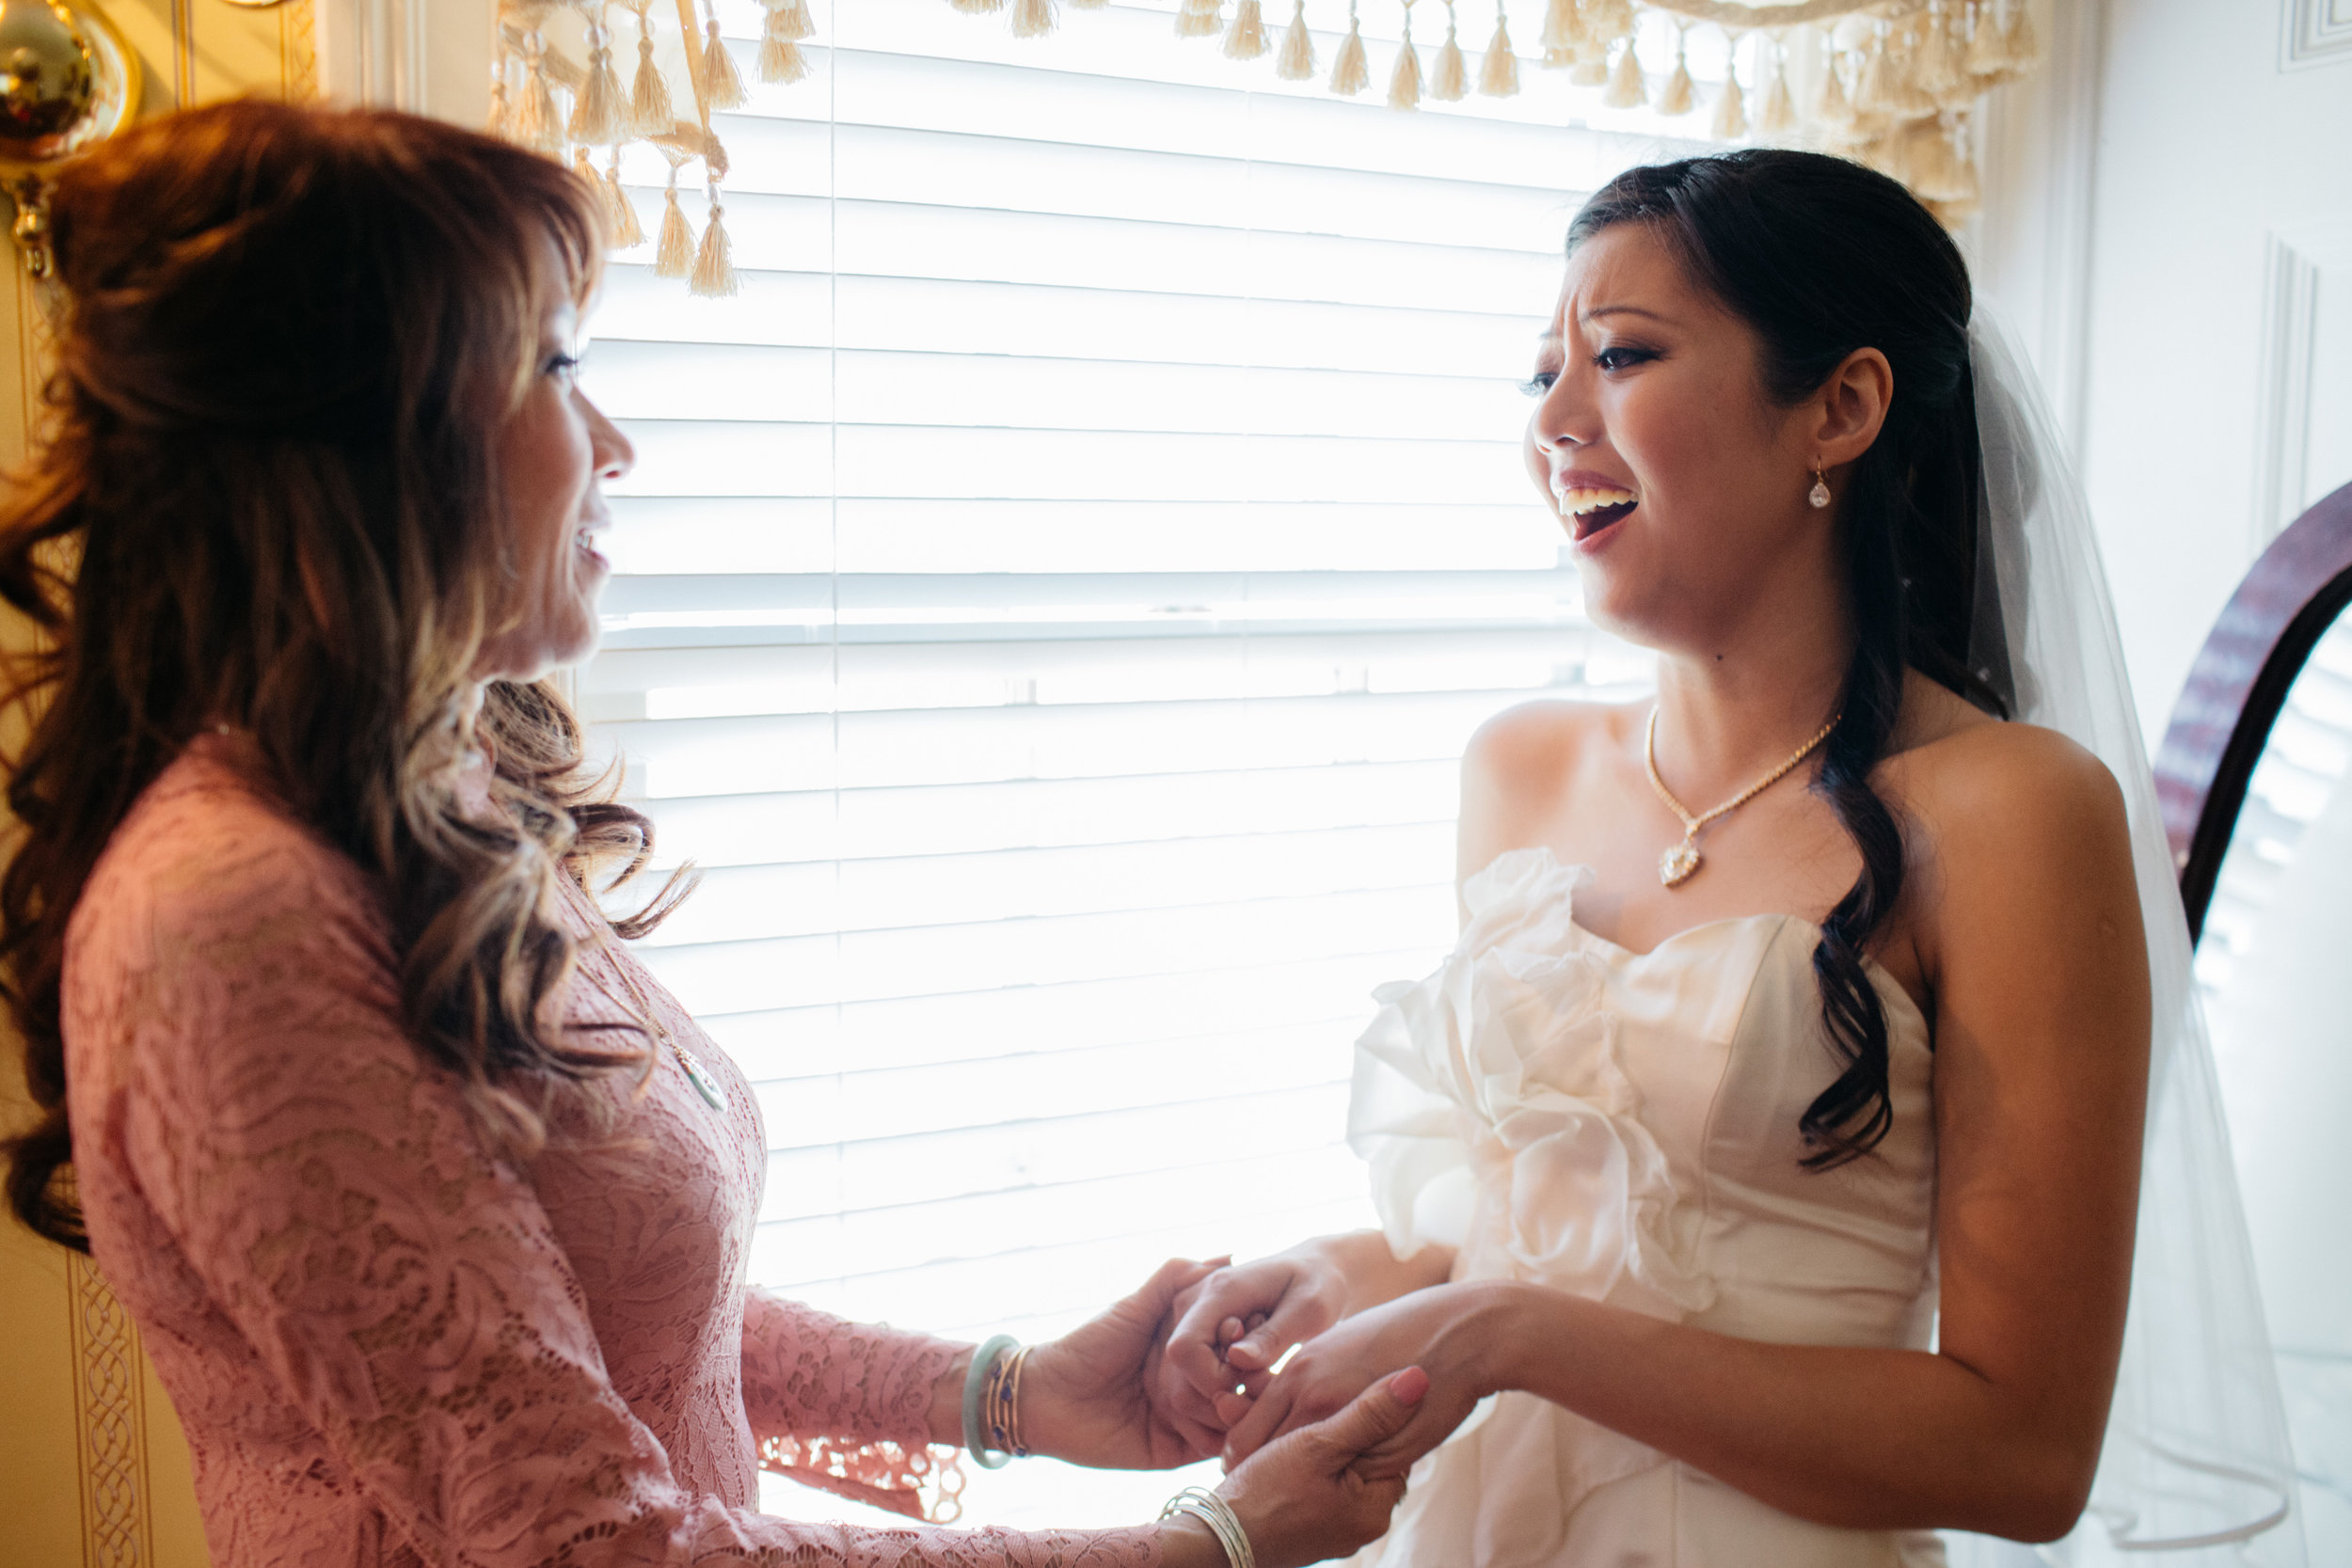 The mother talks to her daughter, few minutes before the wedding ceremony.